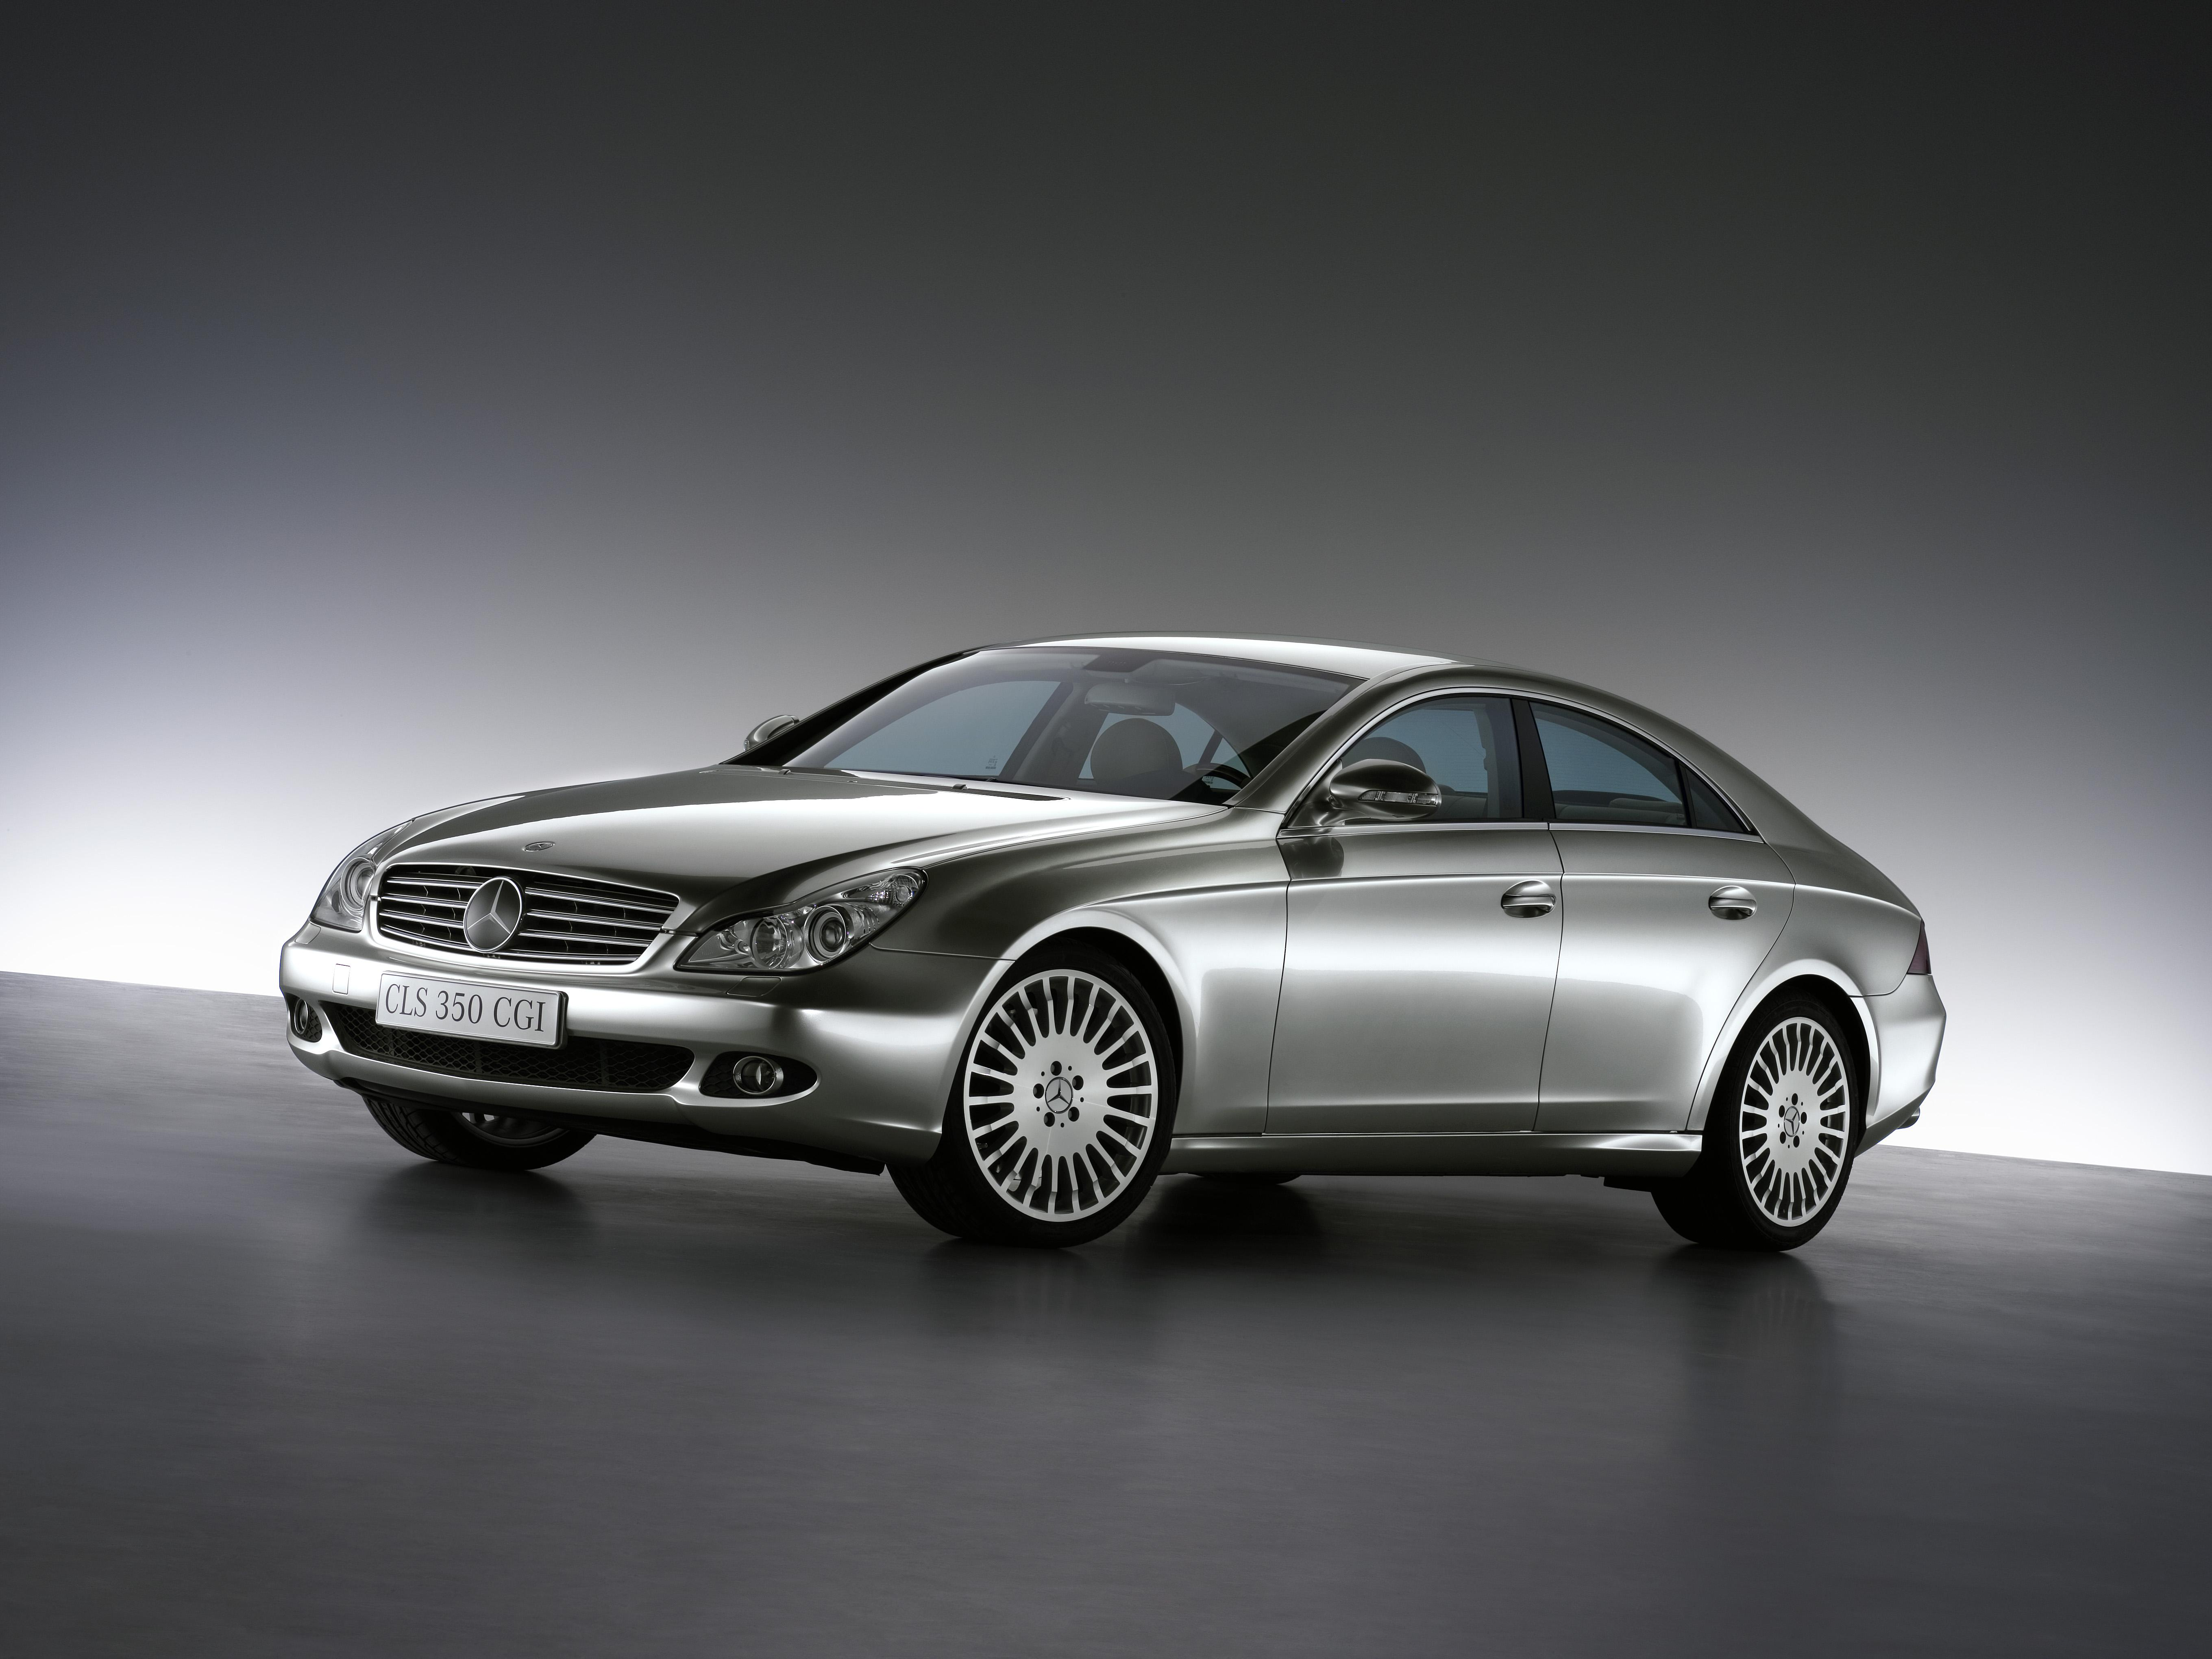 2006 mercedes cls 350 cgi pictures photos wallpapers. Black Bedroom Furniture Sets. Home Design Ideas